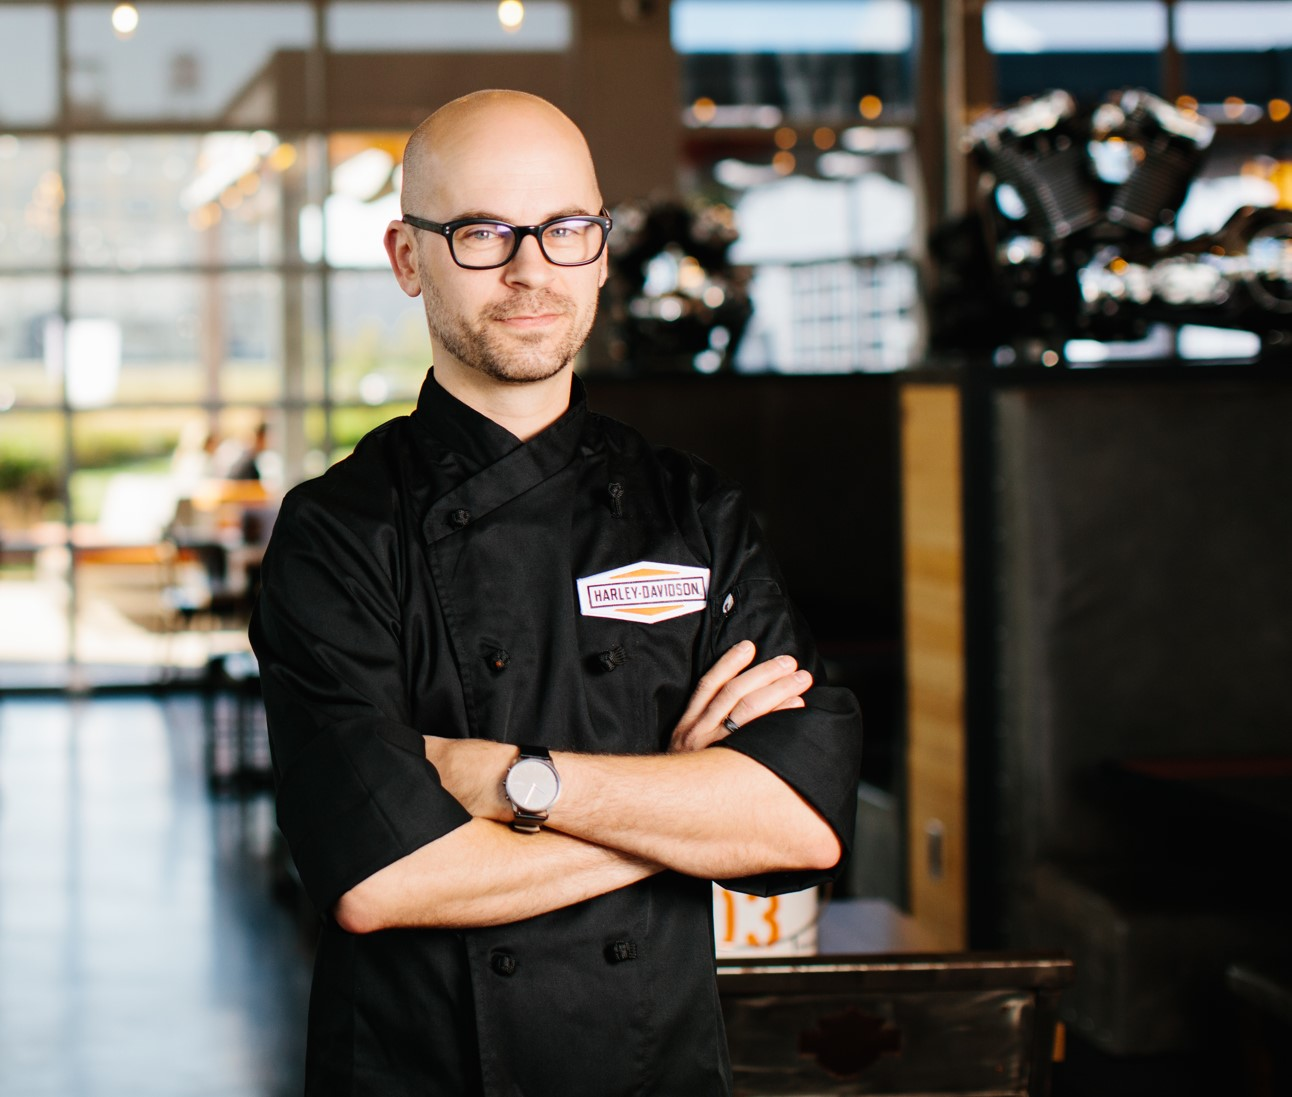 MOTOR™ Names Jed Hanson as New Executive Chef